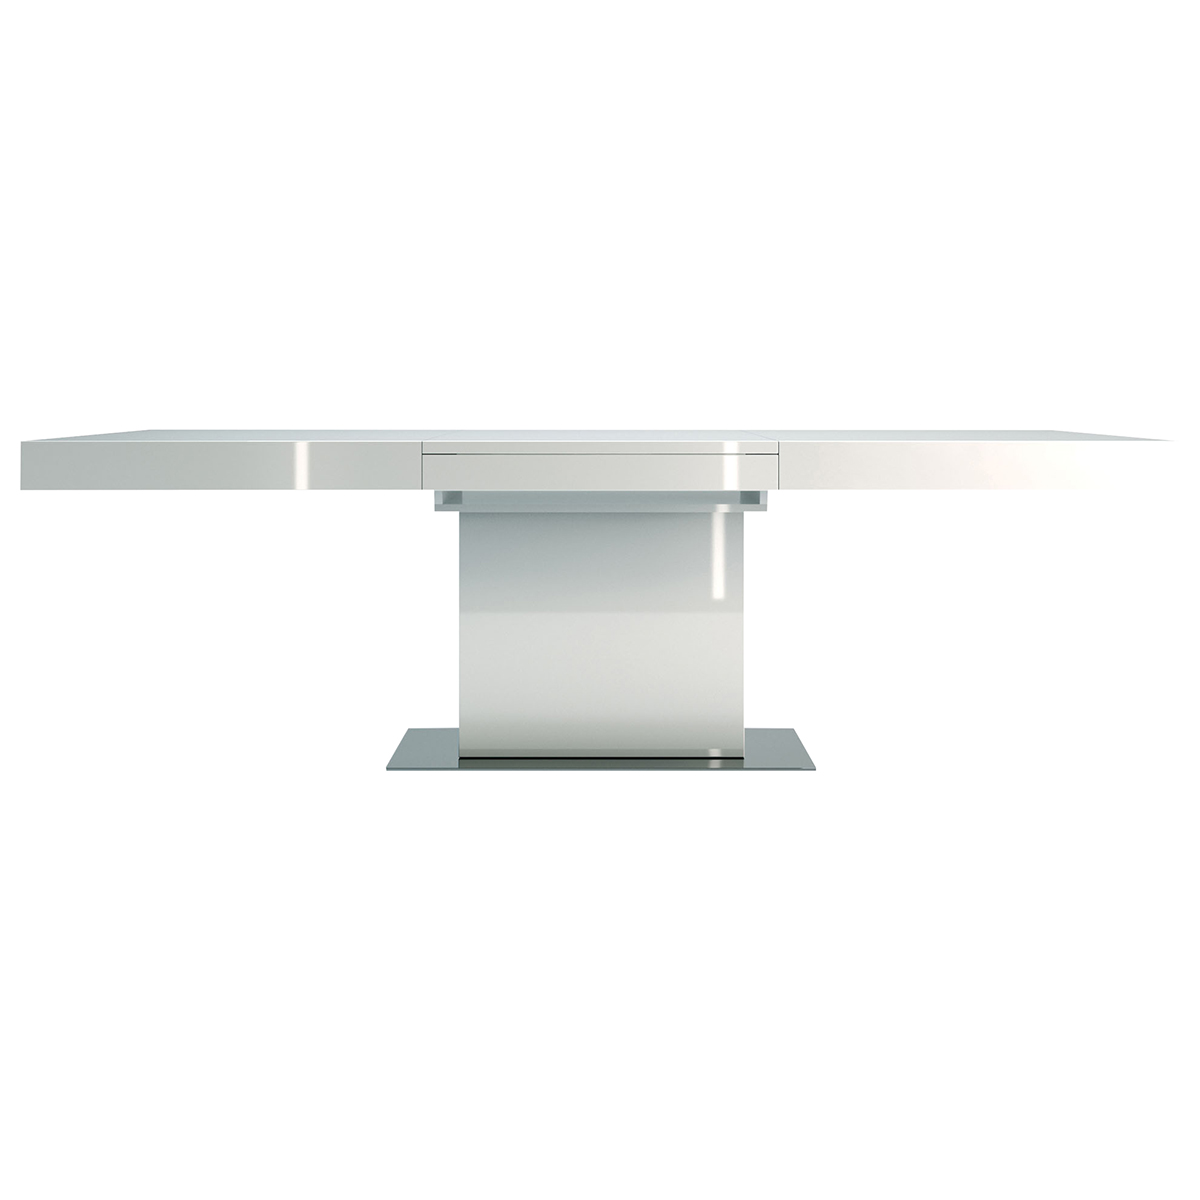 Astor Dining Table : astor dining table white lacquer from www.inmod.com size 1200 x 1200 jpeg 69kB